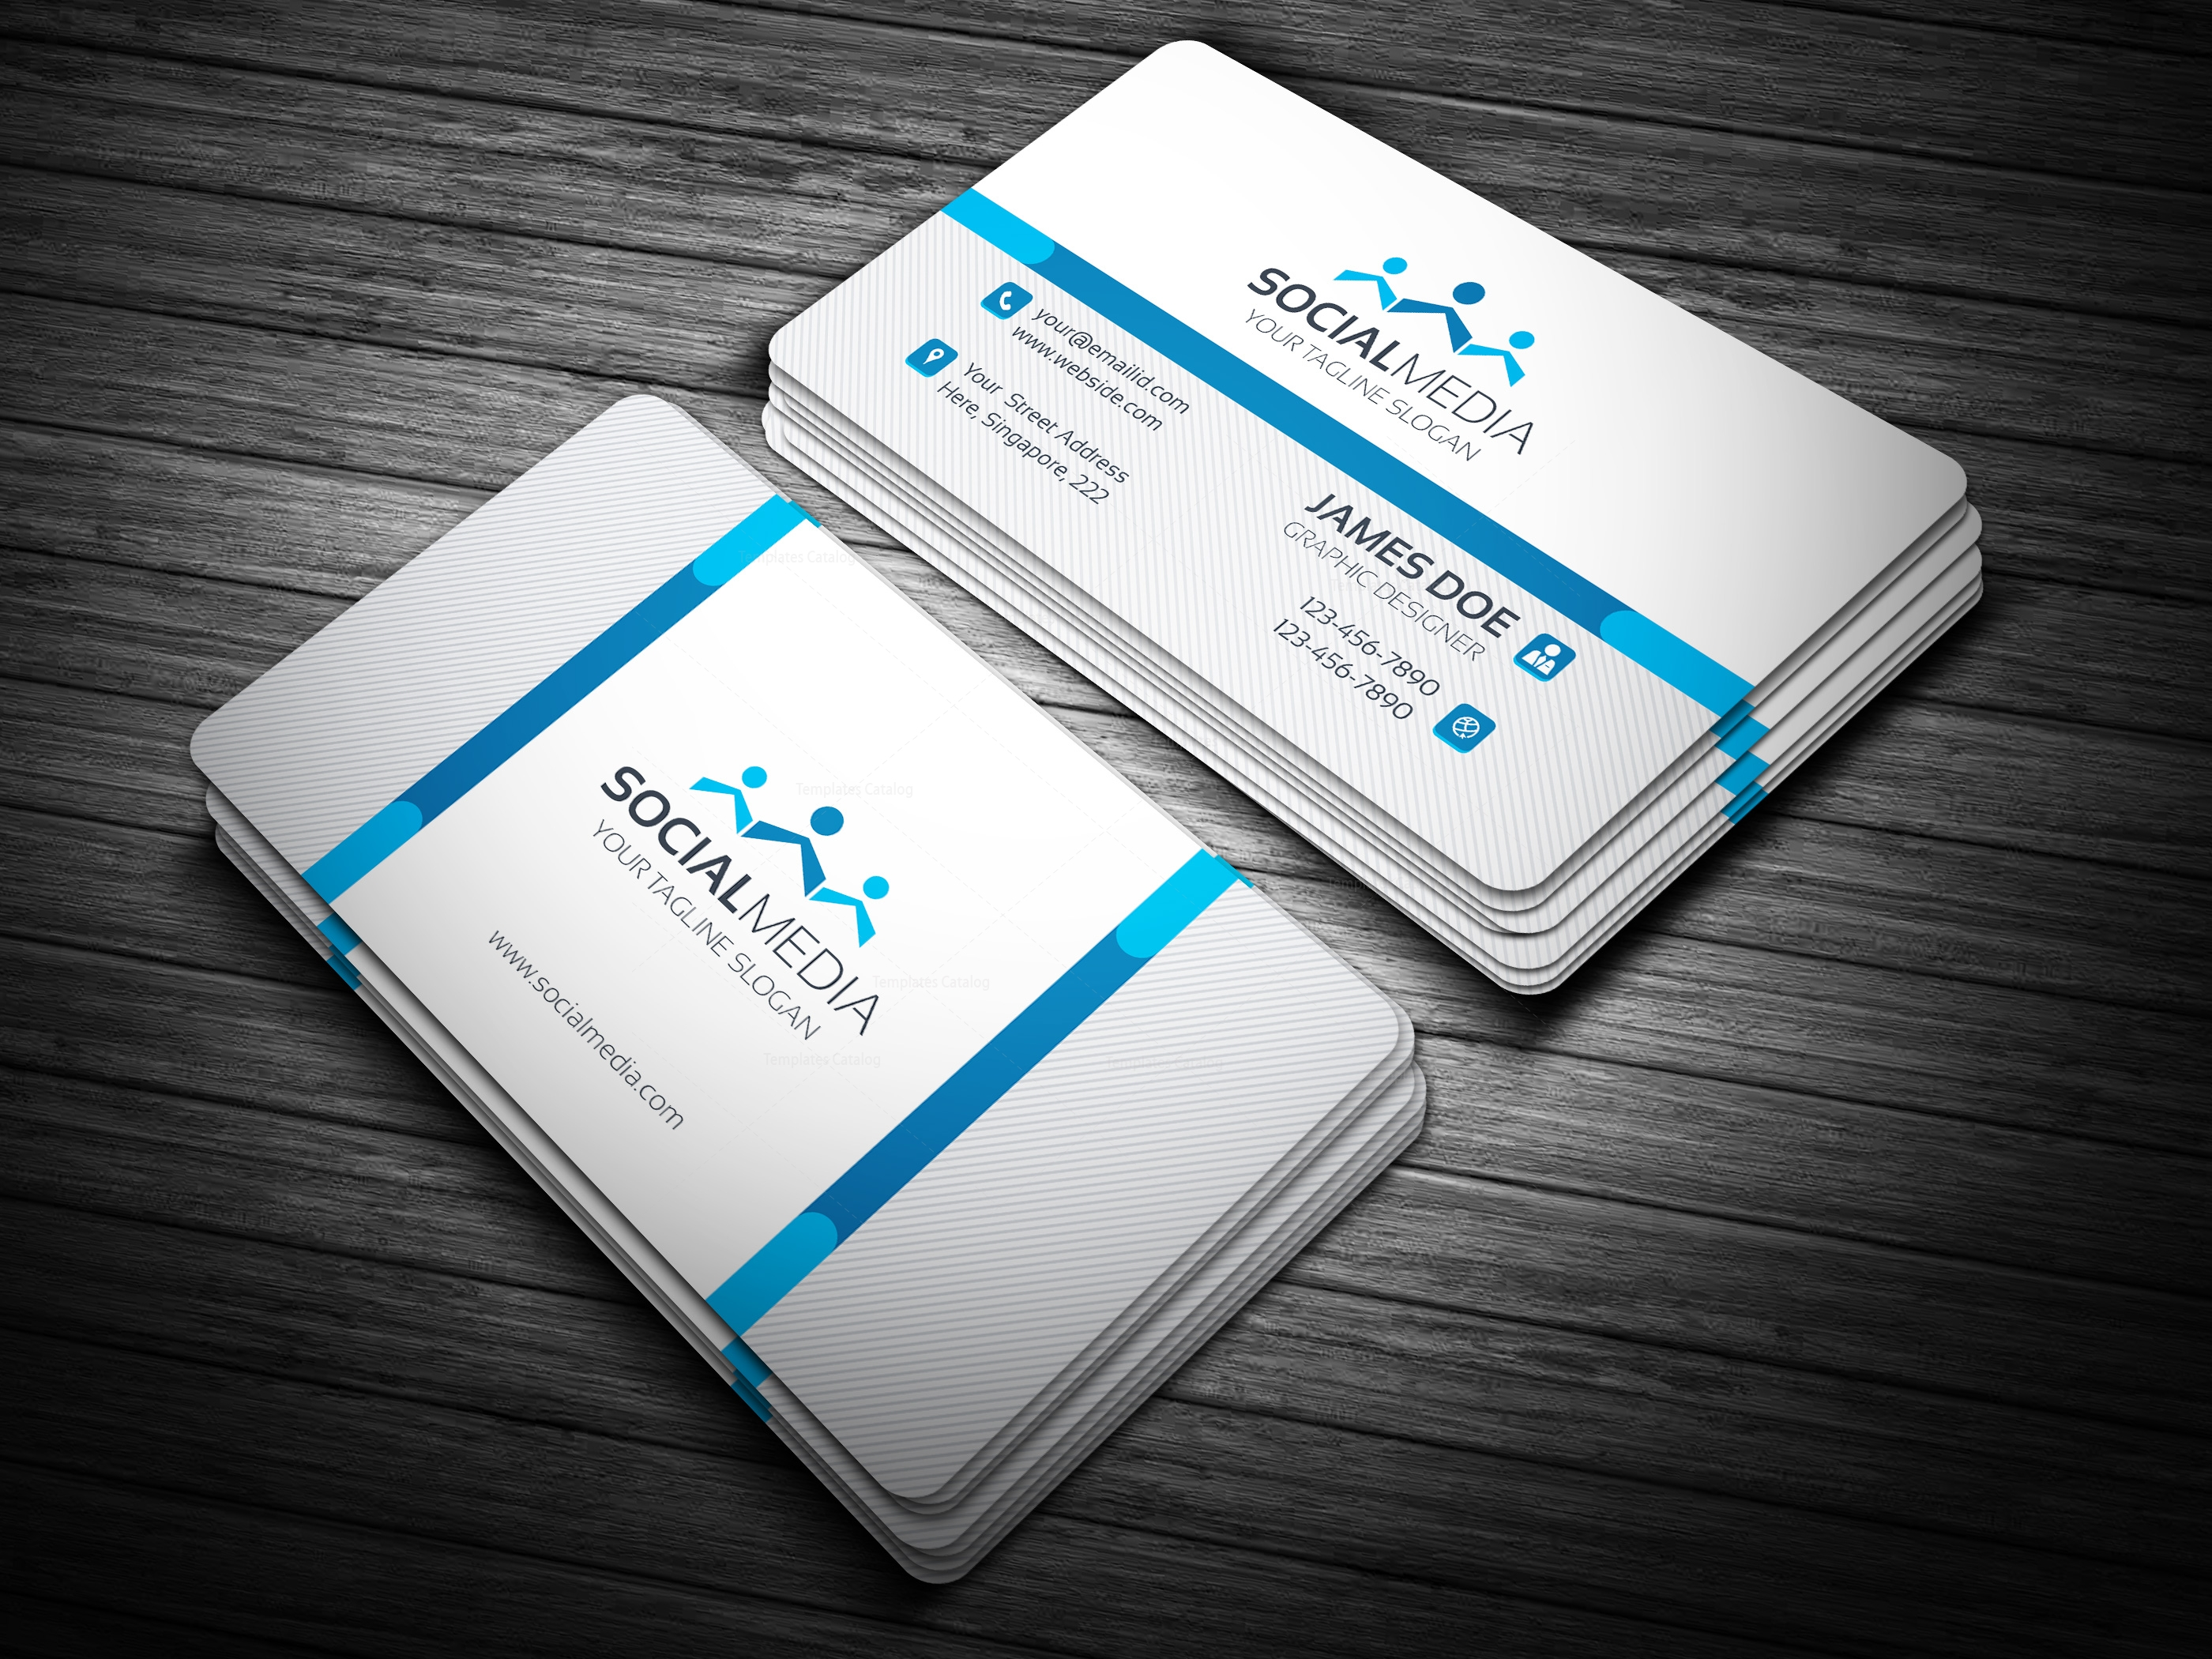 Unique Business Cards With Social Media Photo - Business Card Ideas ...